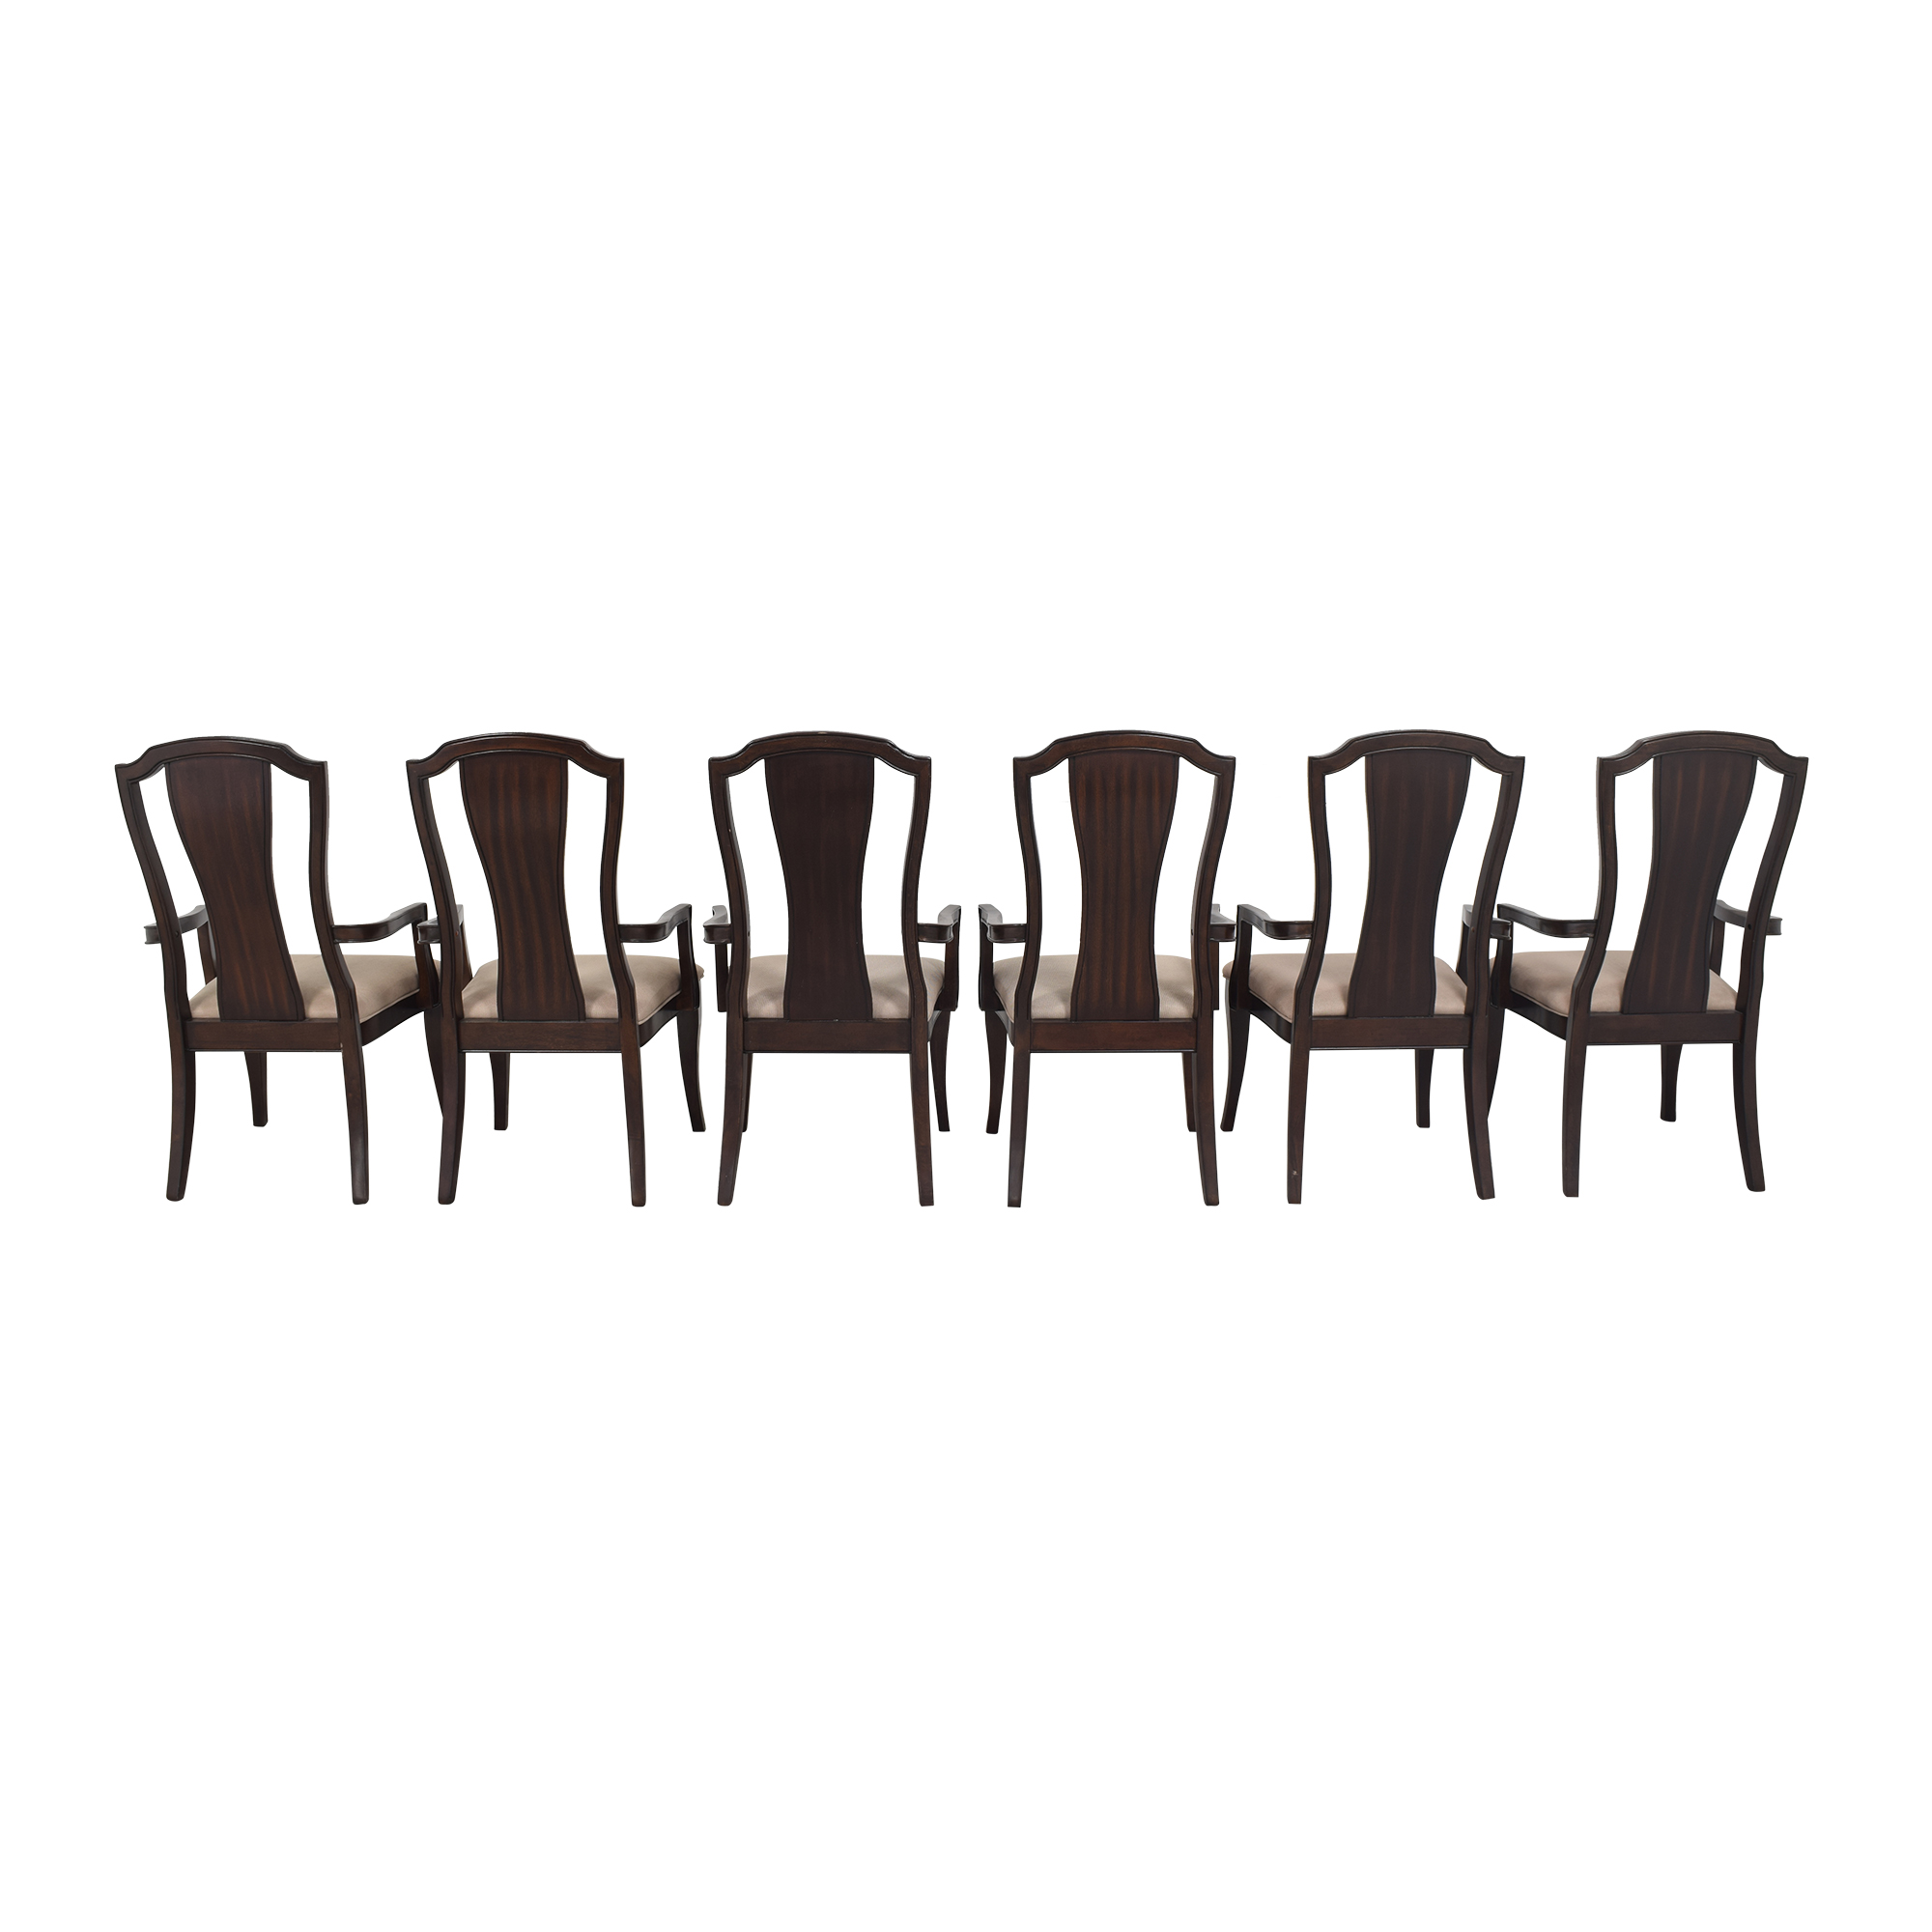 Legacy Classic Dining Arm Chairs / Chairs